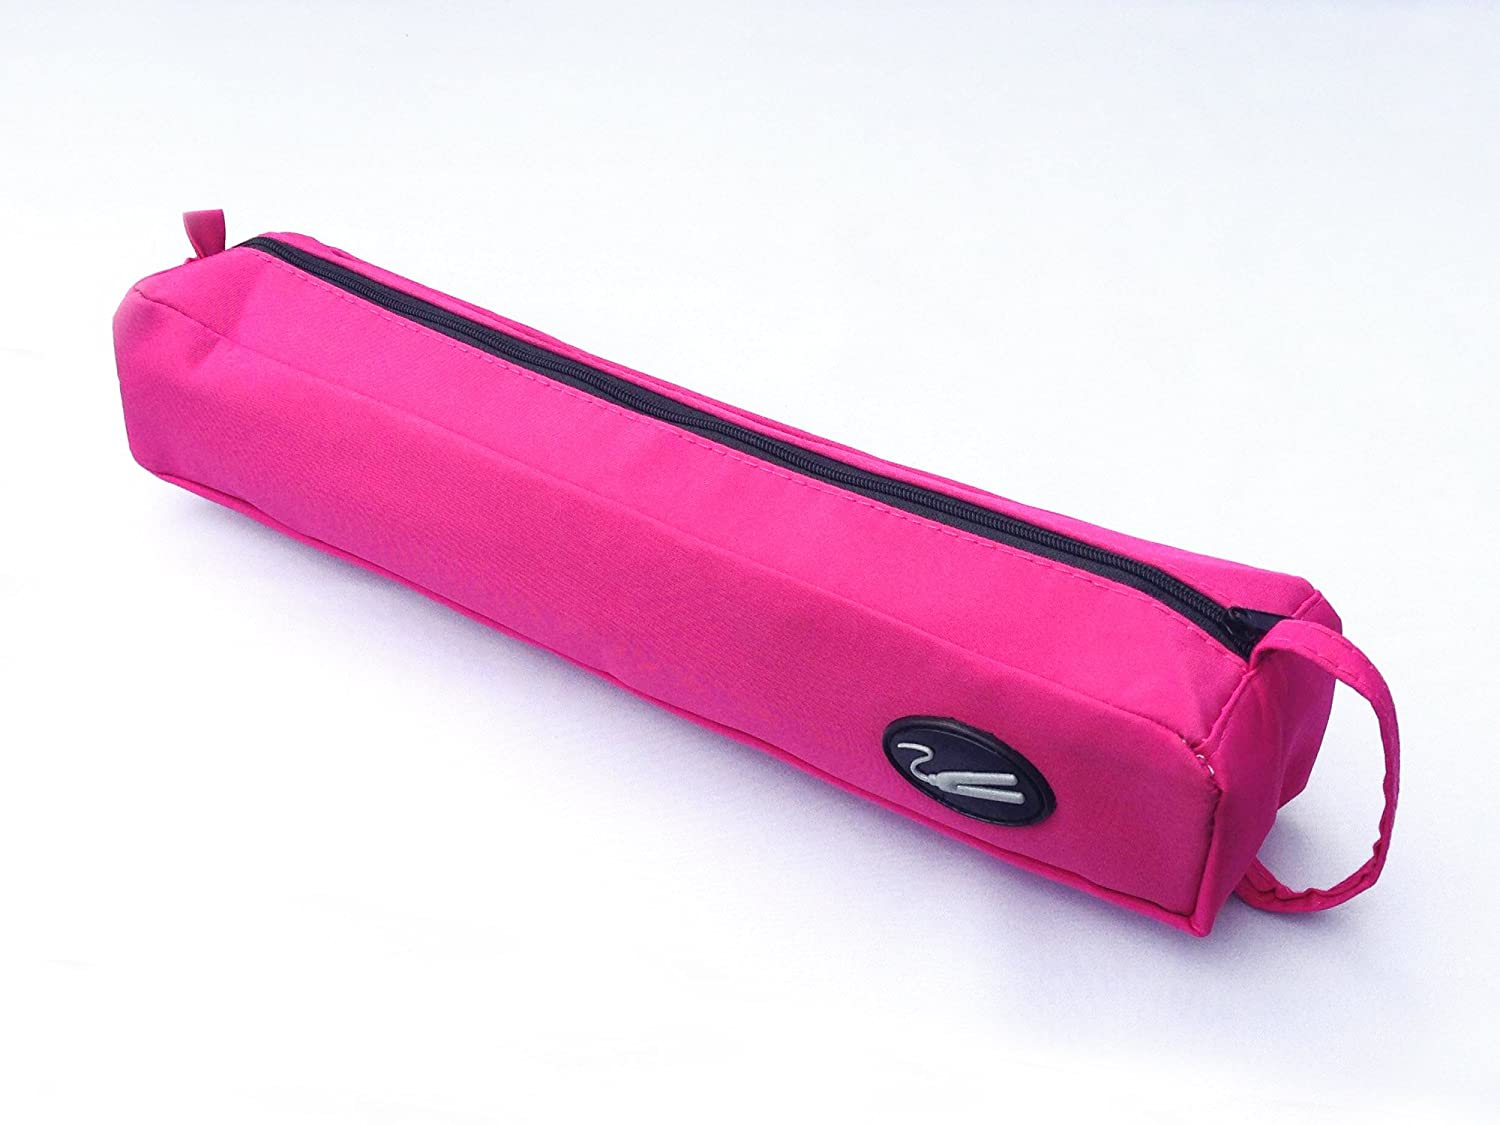 Pink Heat Resistant Hair Straighteners Storage Bag fits GHD, Cloud Nine, She, FHI Ion Originals Ltd. TR00SBP